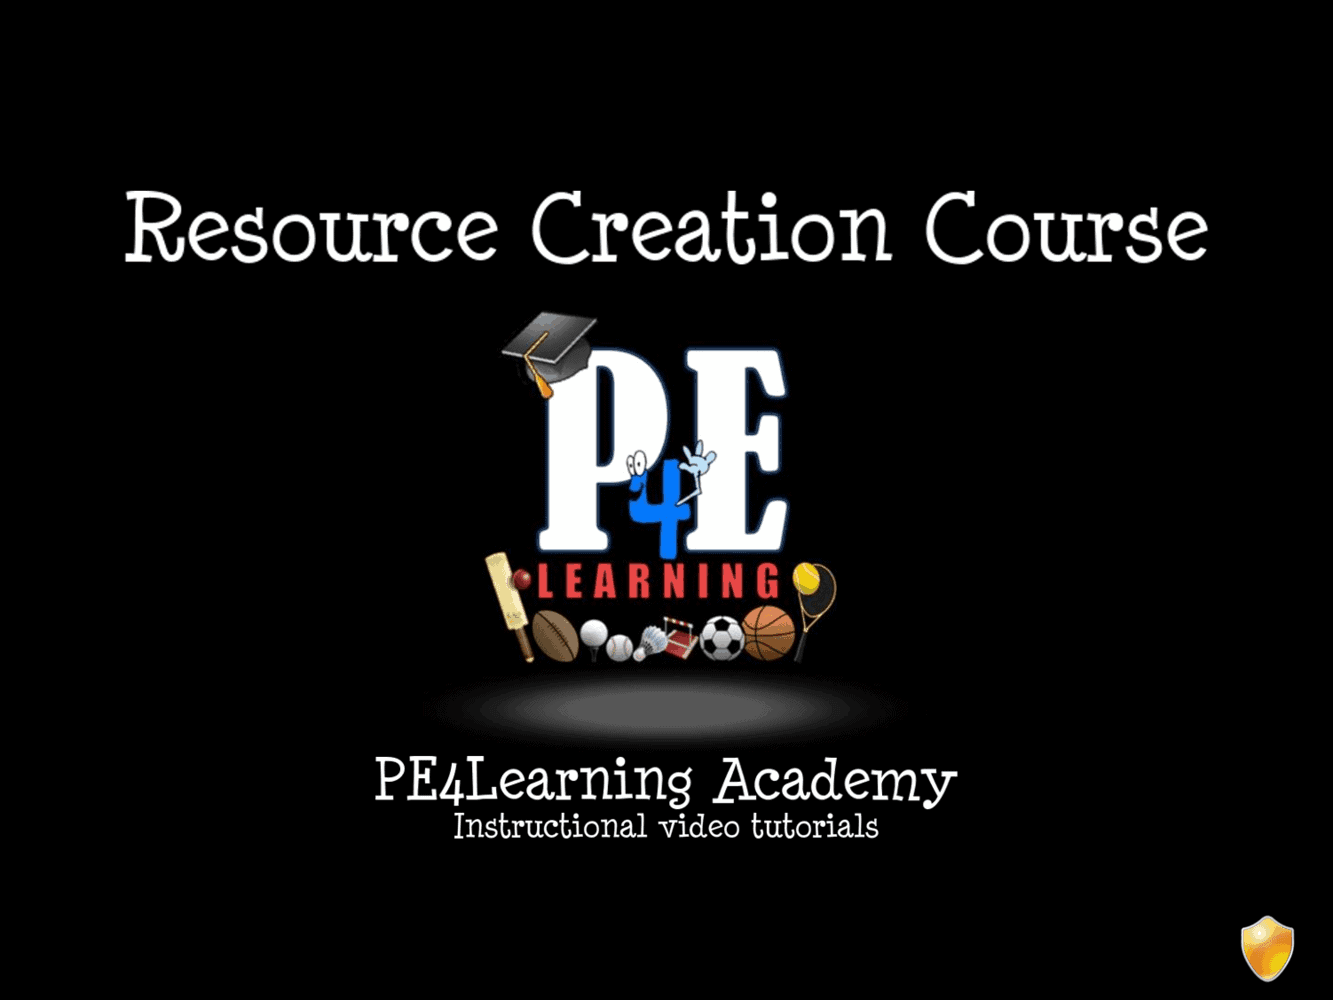 Resource Creation Tools Course - Develop your Resource Creation, Design and Editing Skills [PREMIUM]